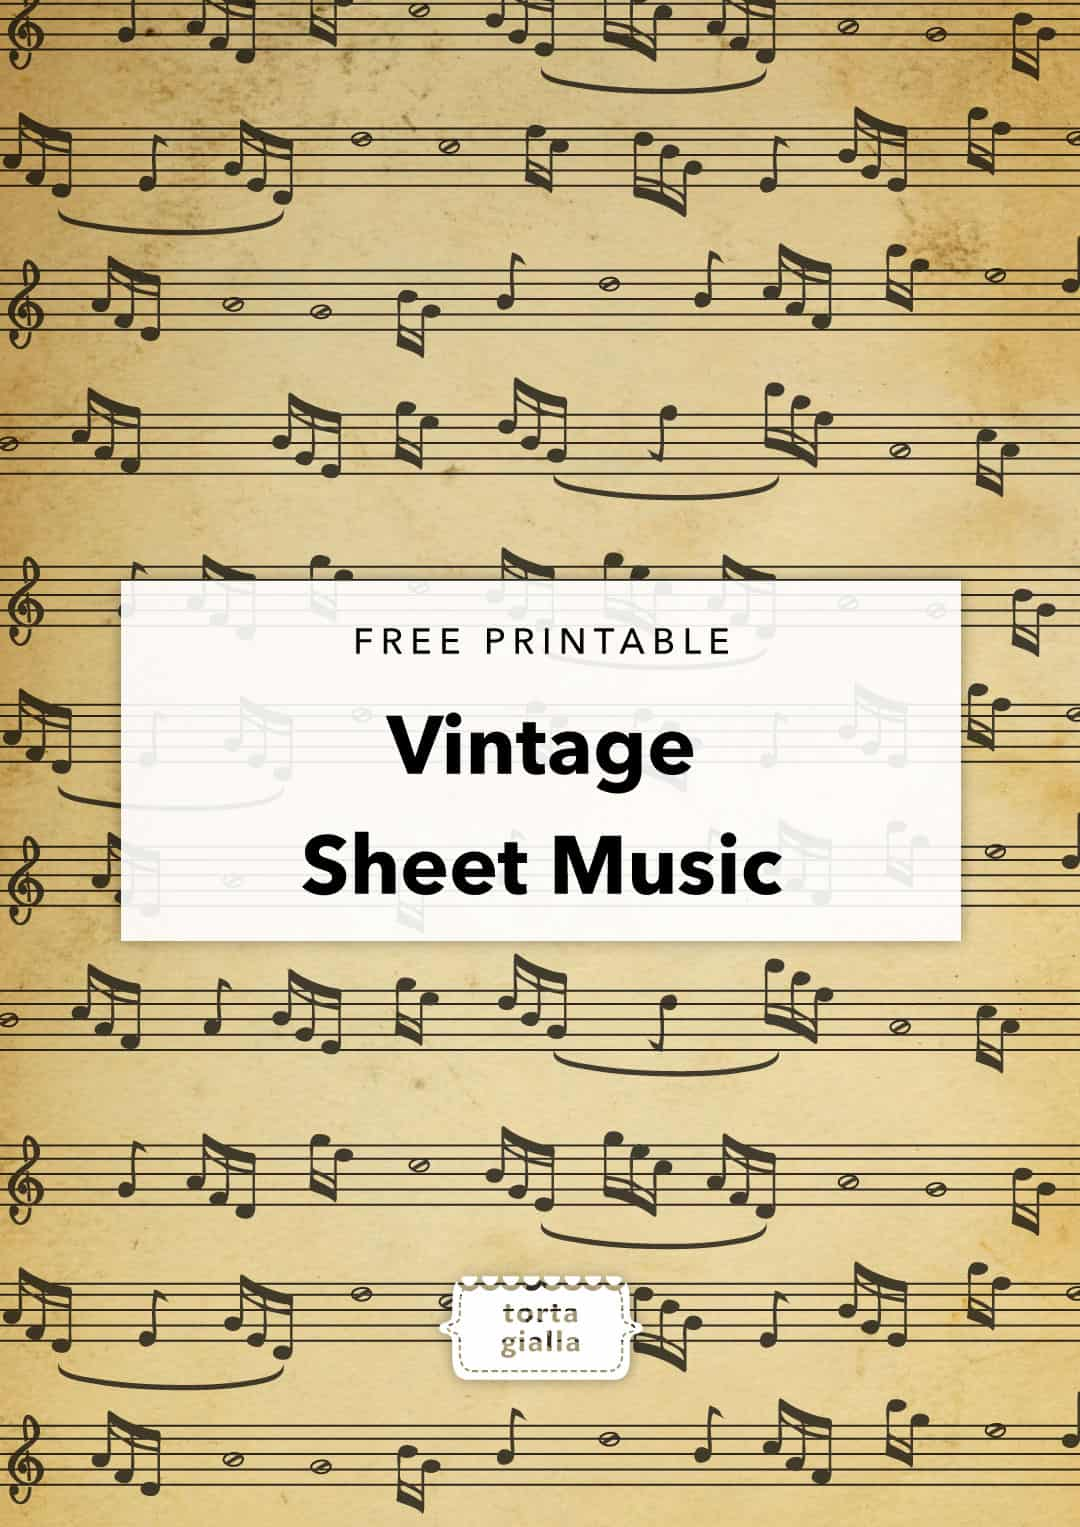 graphic about Free Vintage Printable referred to as Totally free Printable Typical Sheet New music tortagialla